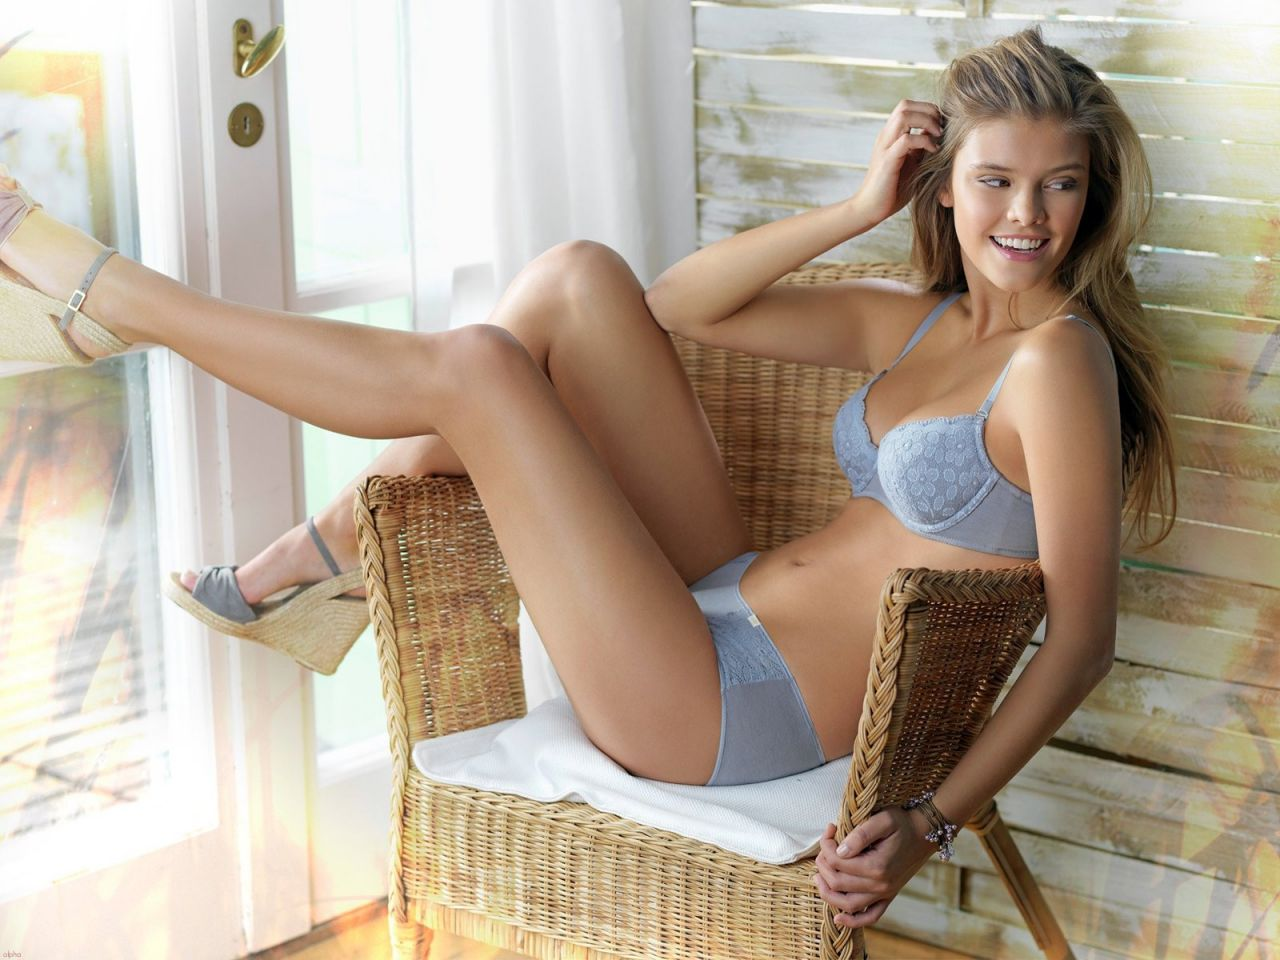 Nina Agdal Hot Wallpapers 5